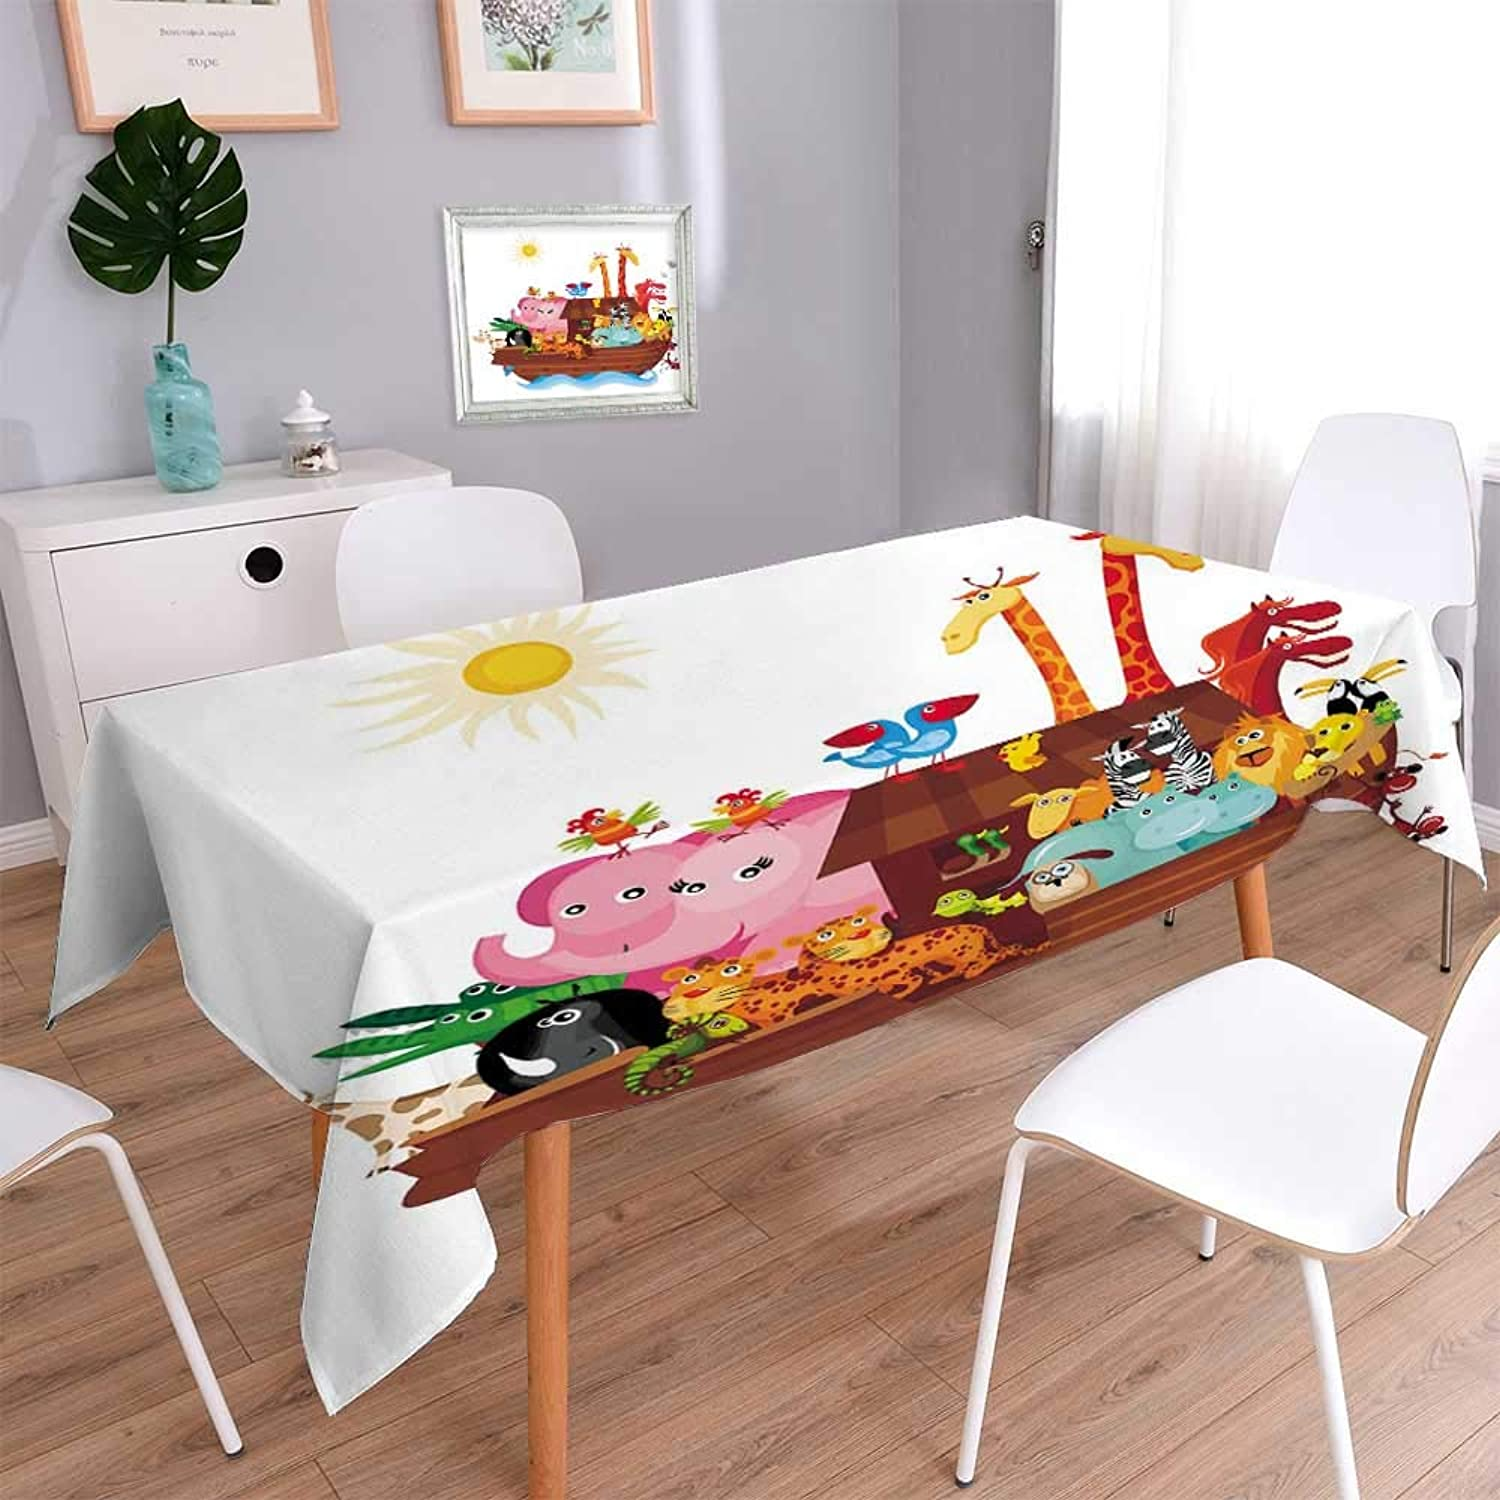 PINAFORE HOME Polyester Cloth Fabric Cover Noah Ark Heavy Weight Cotton Linen Fabric Decorative Rectangle, 70 x 120 Inch